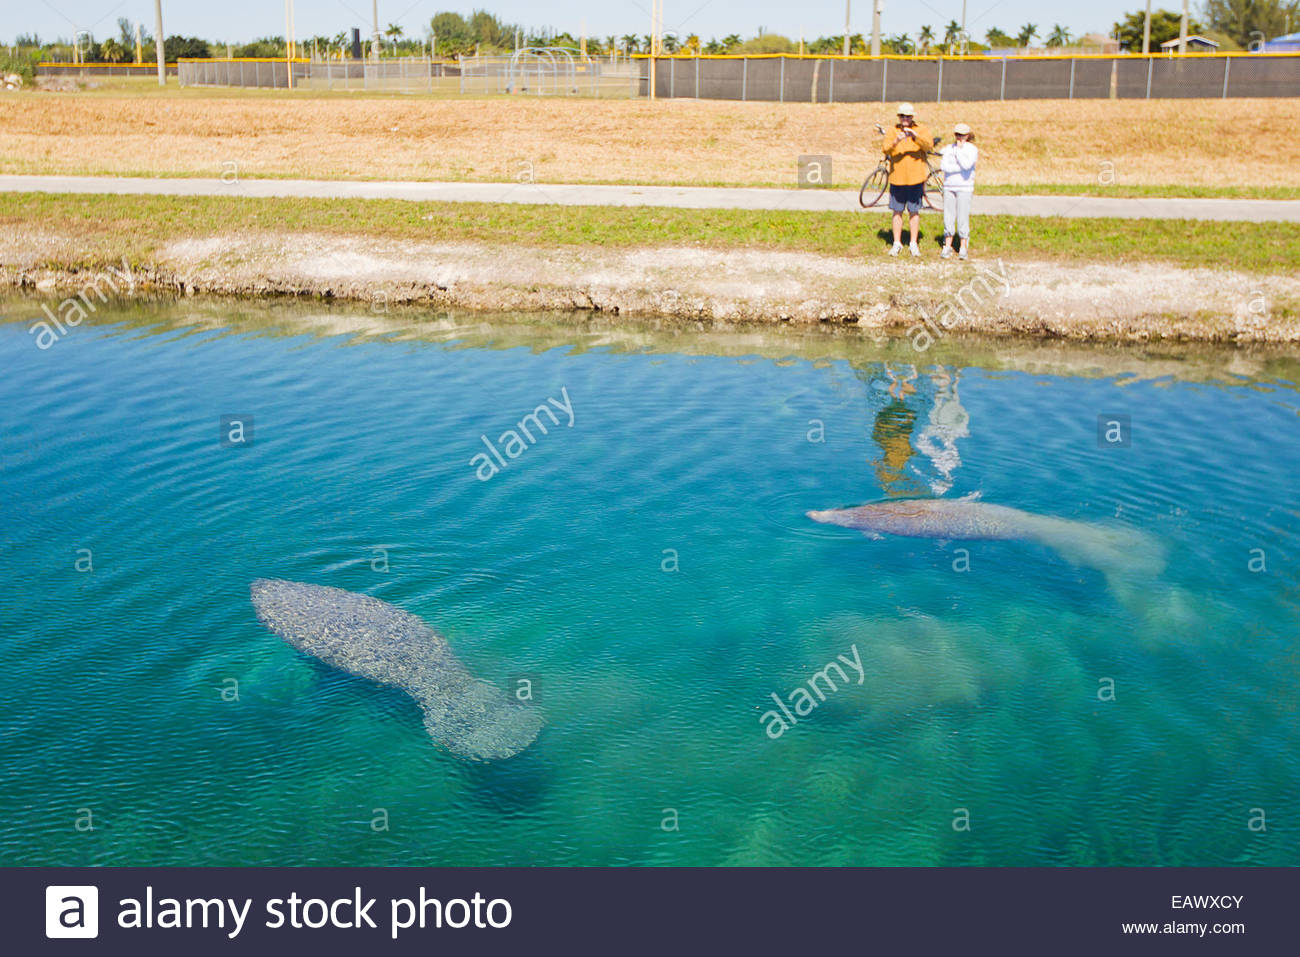 People watch manatees swim in a canal in Homestead. - Stock Image